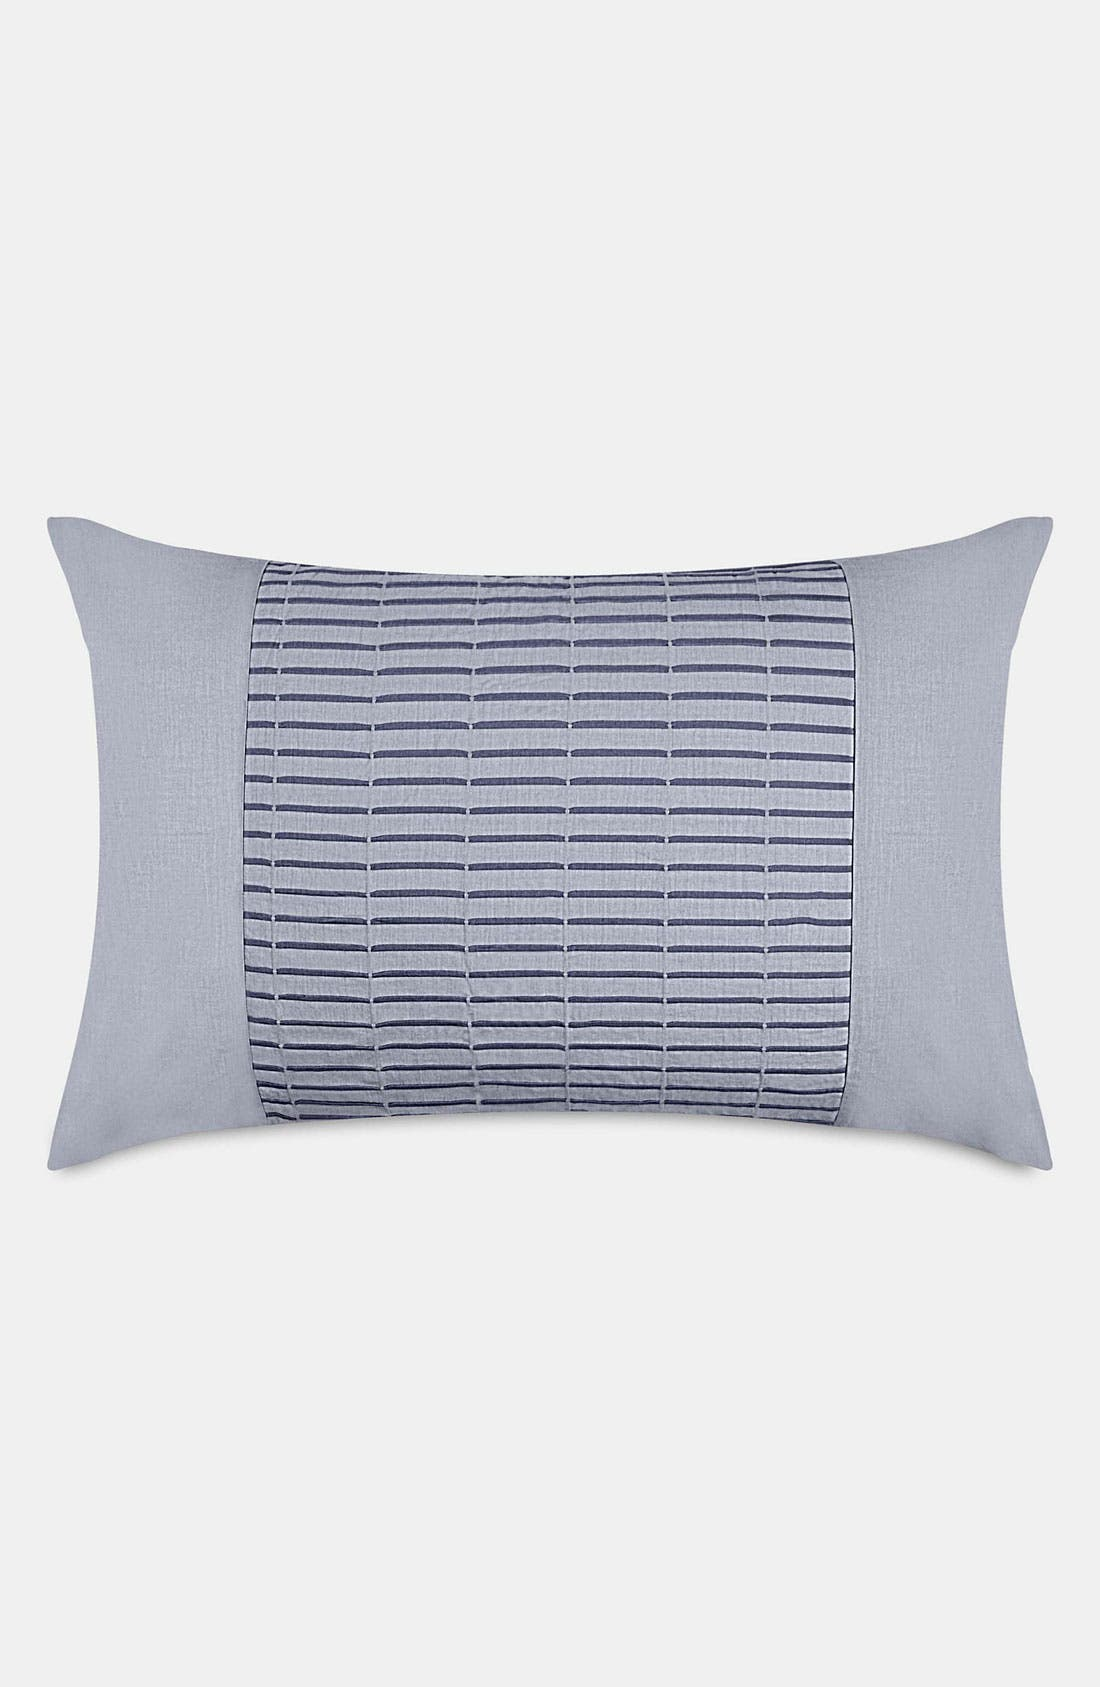 Main Image - DKNY 'City Rhythm' Pillow Sham